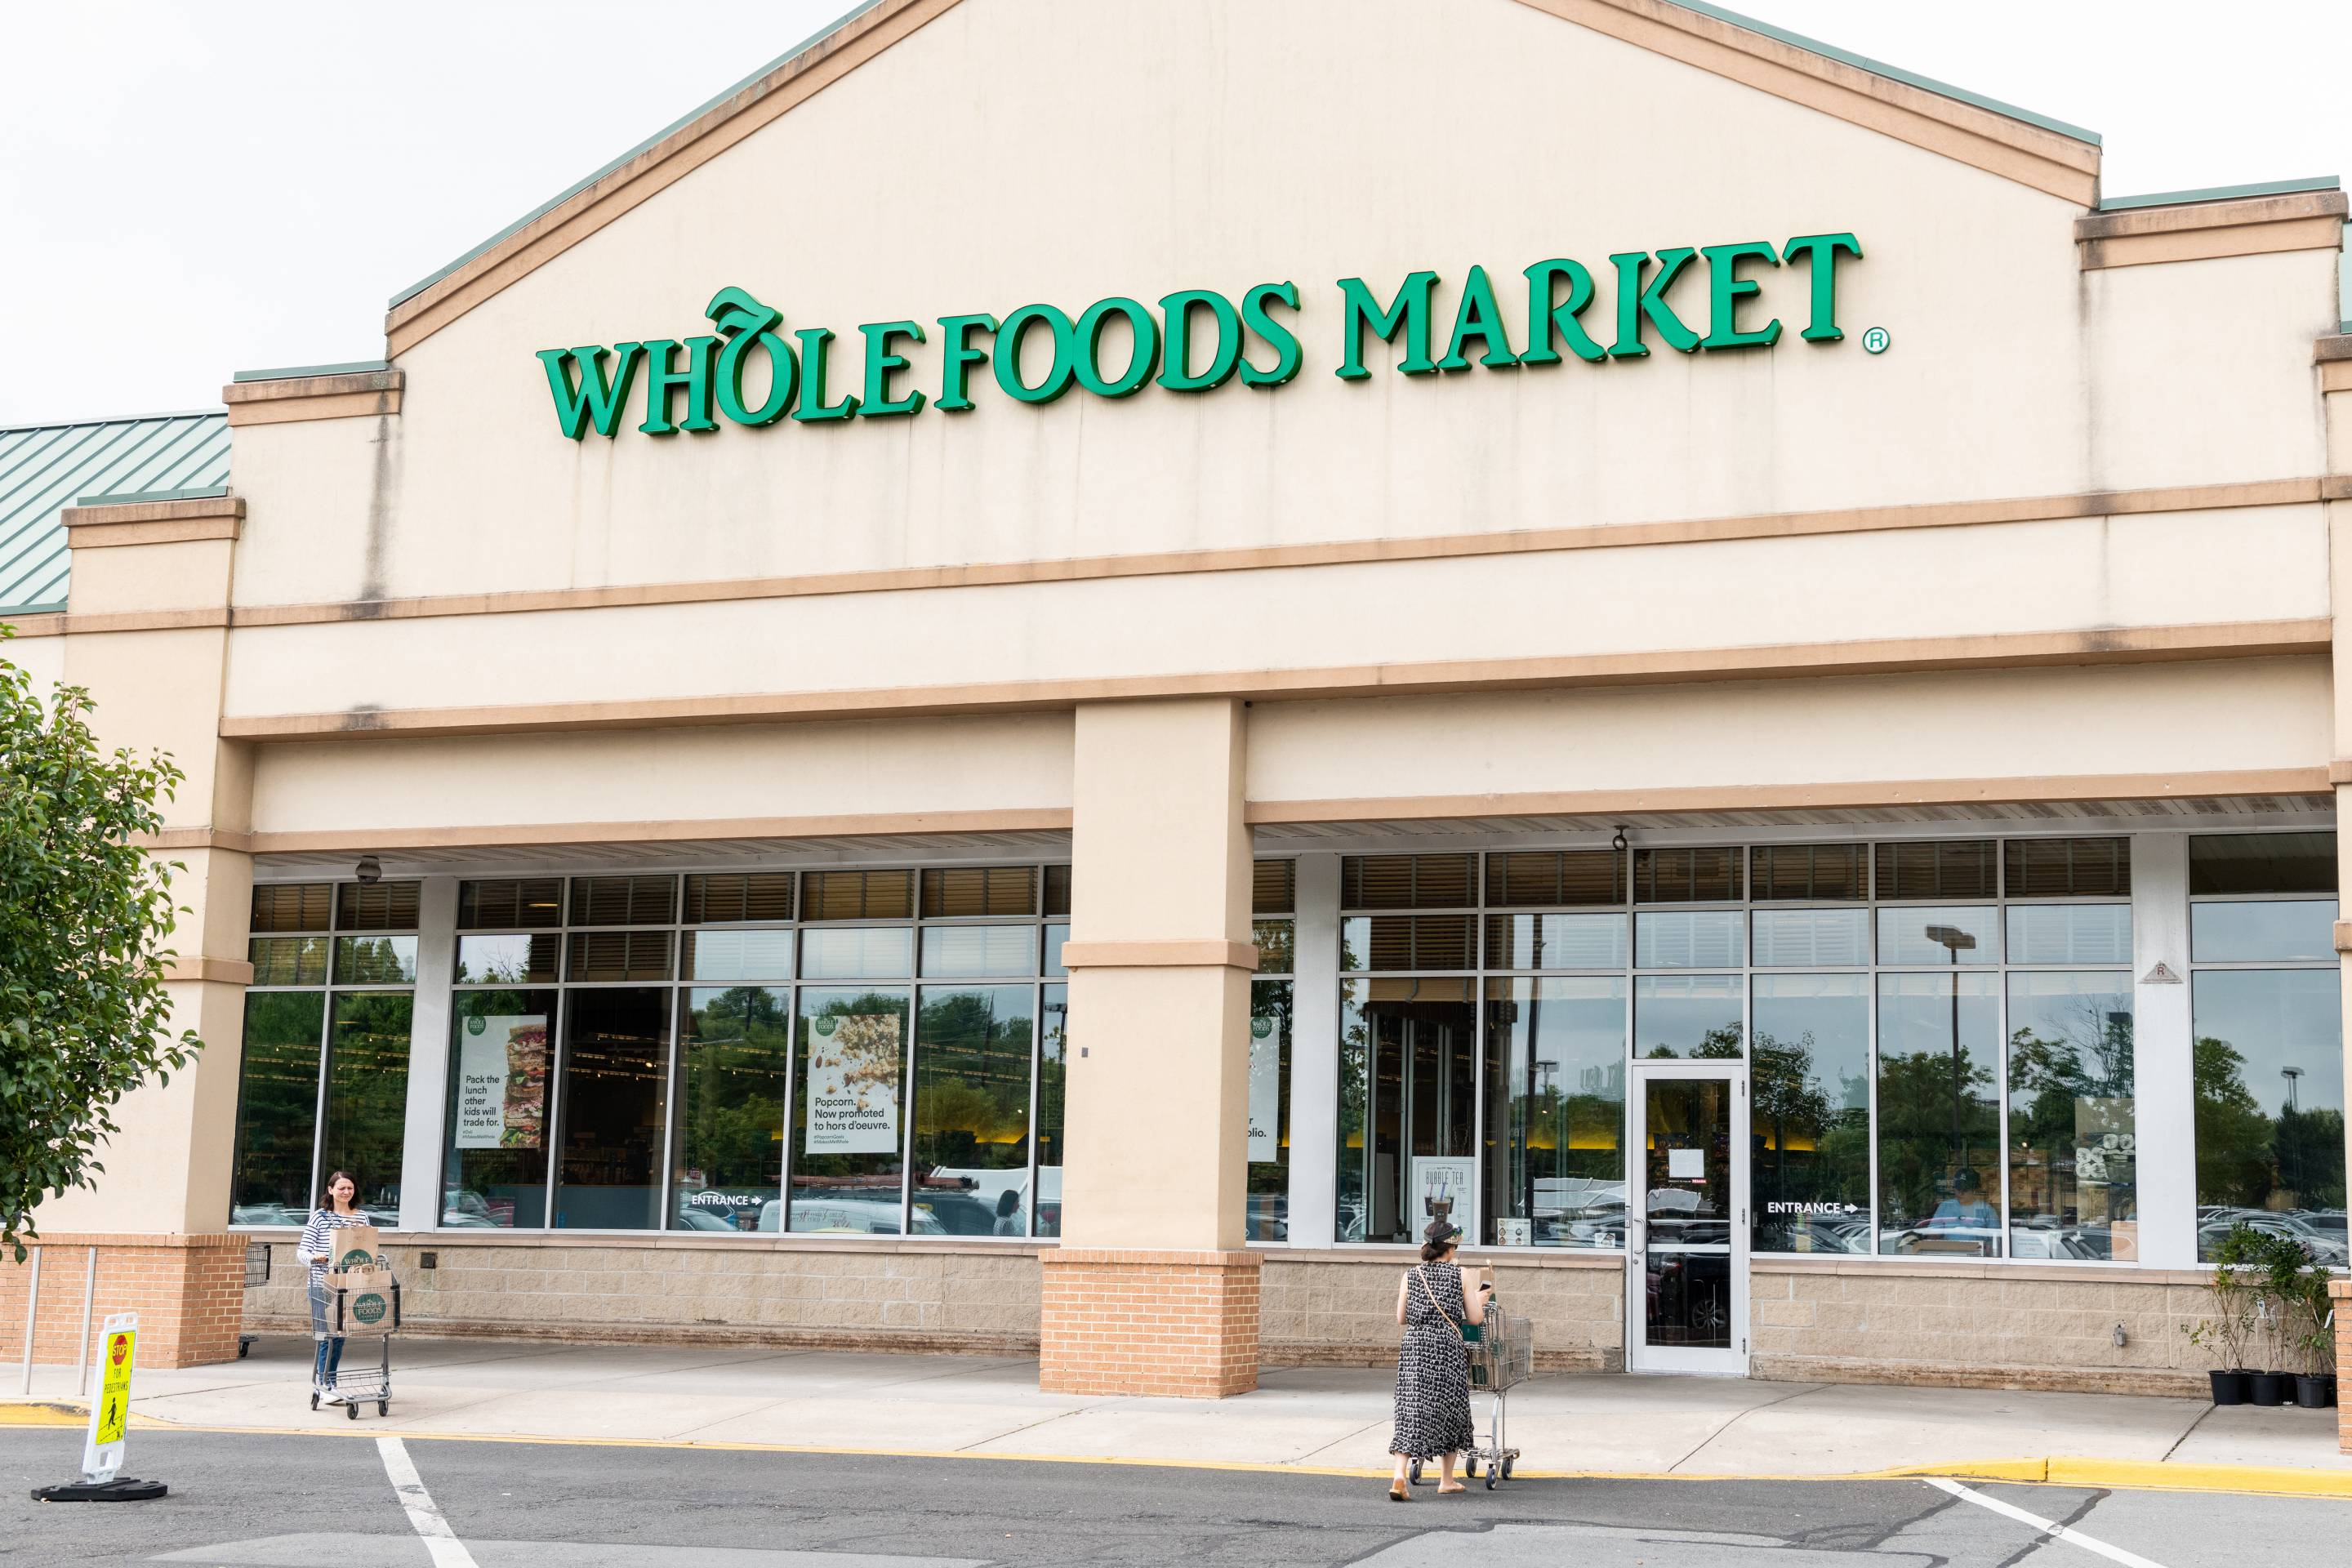 Whole Foods Market store in Princeton, New Jersey